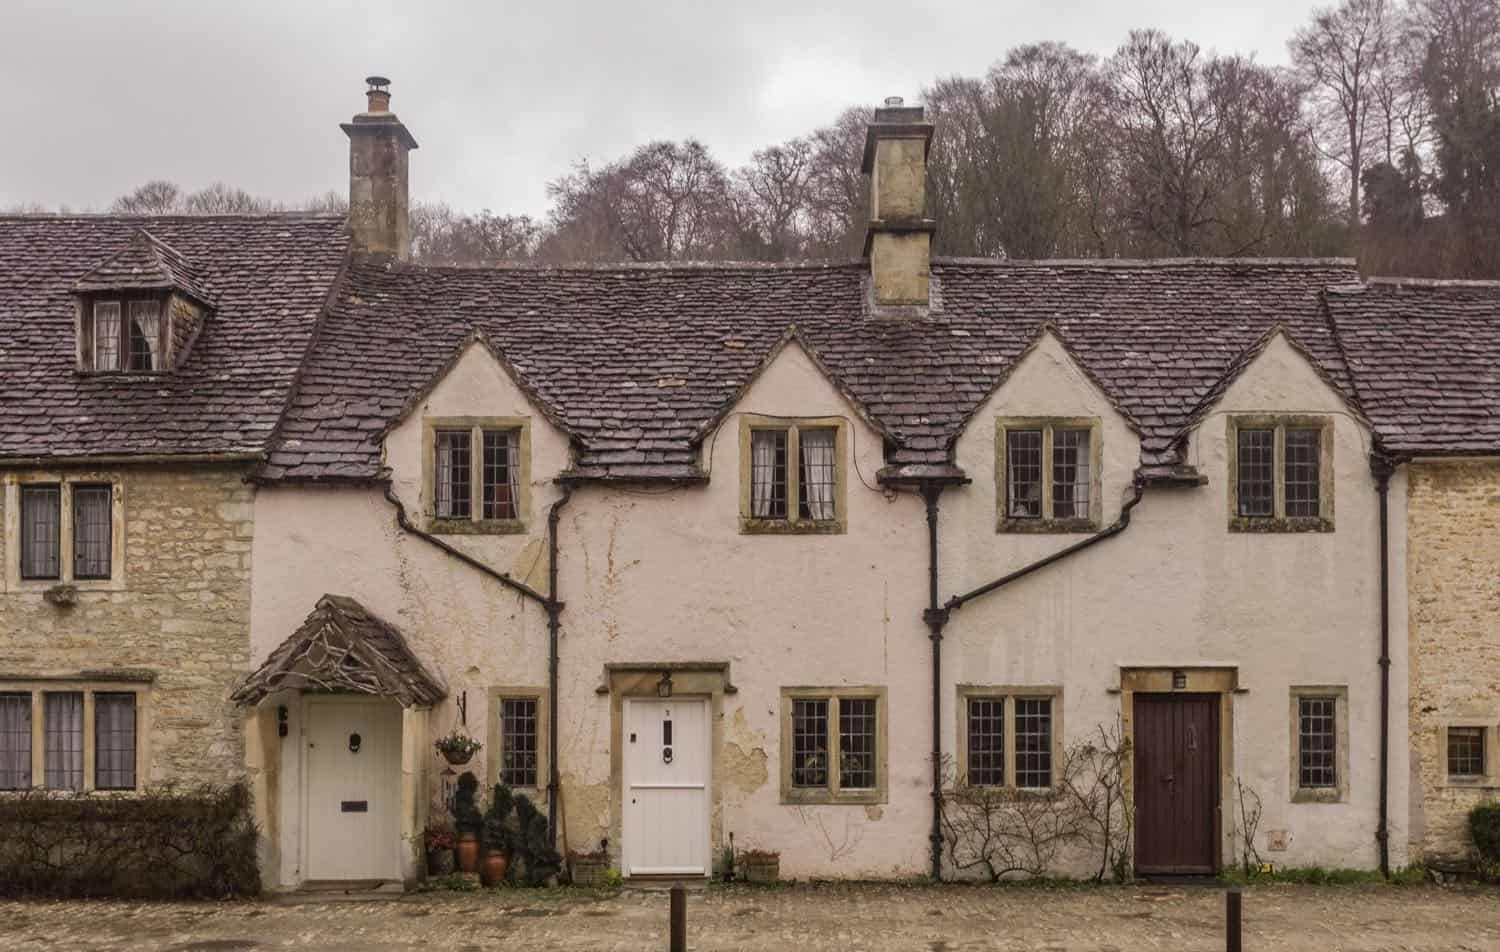 Two Magical English Towns to Add to Your Bucket List: Castle Combe and Lacock